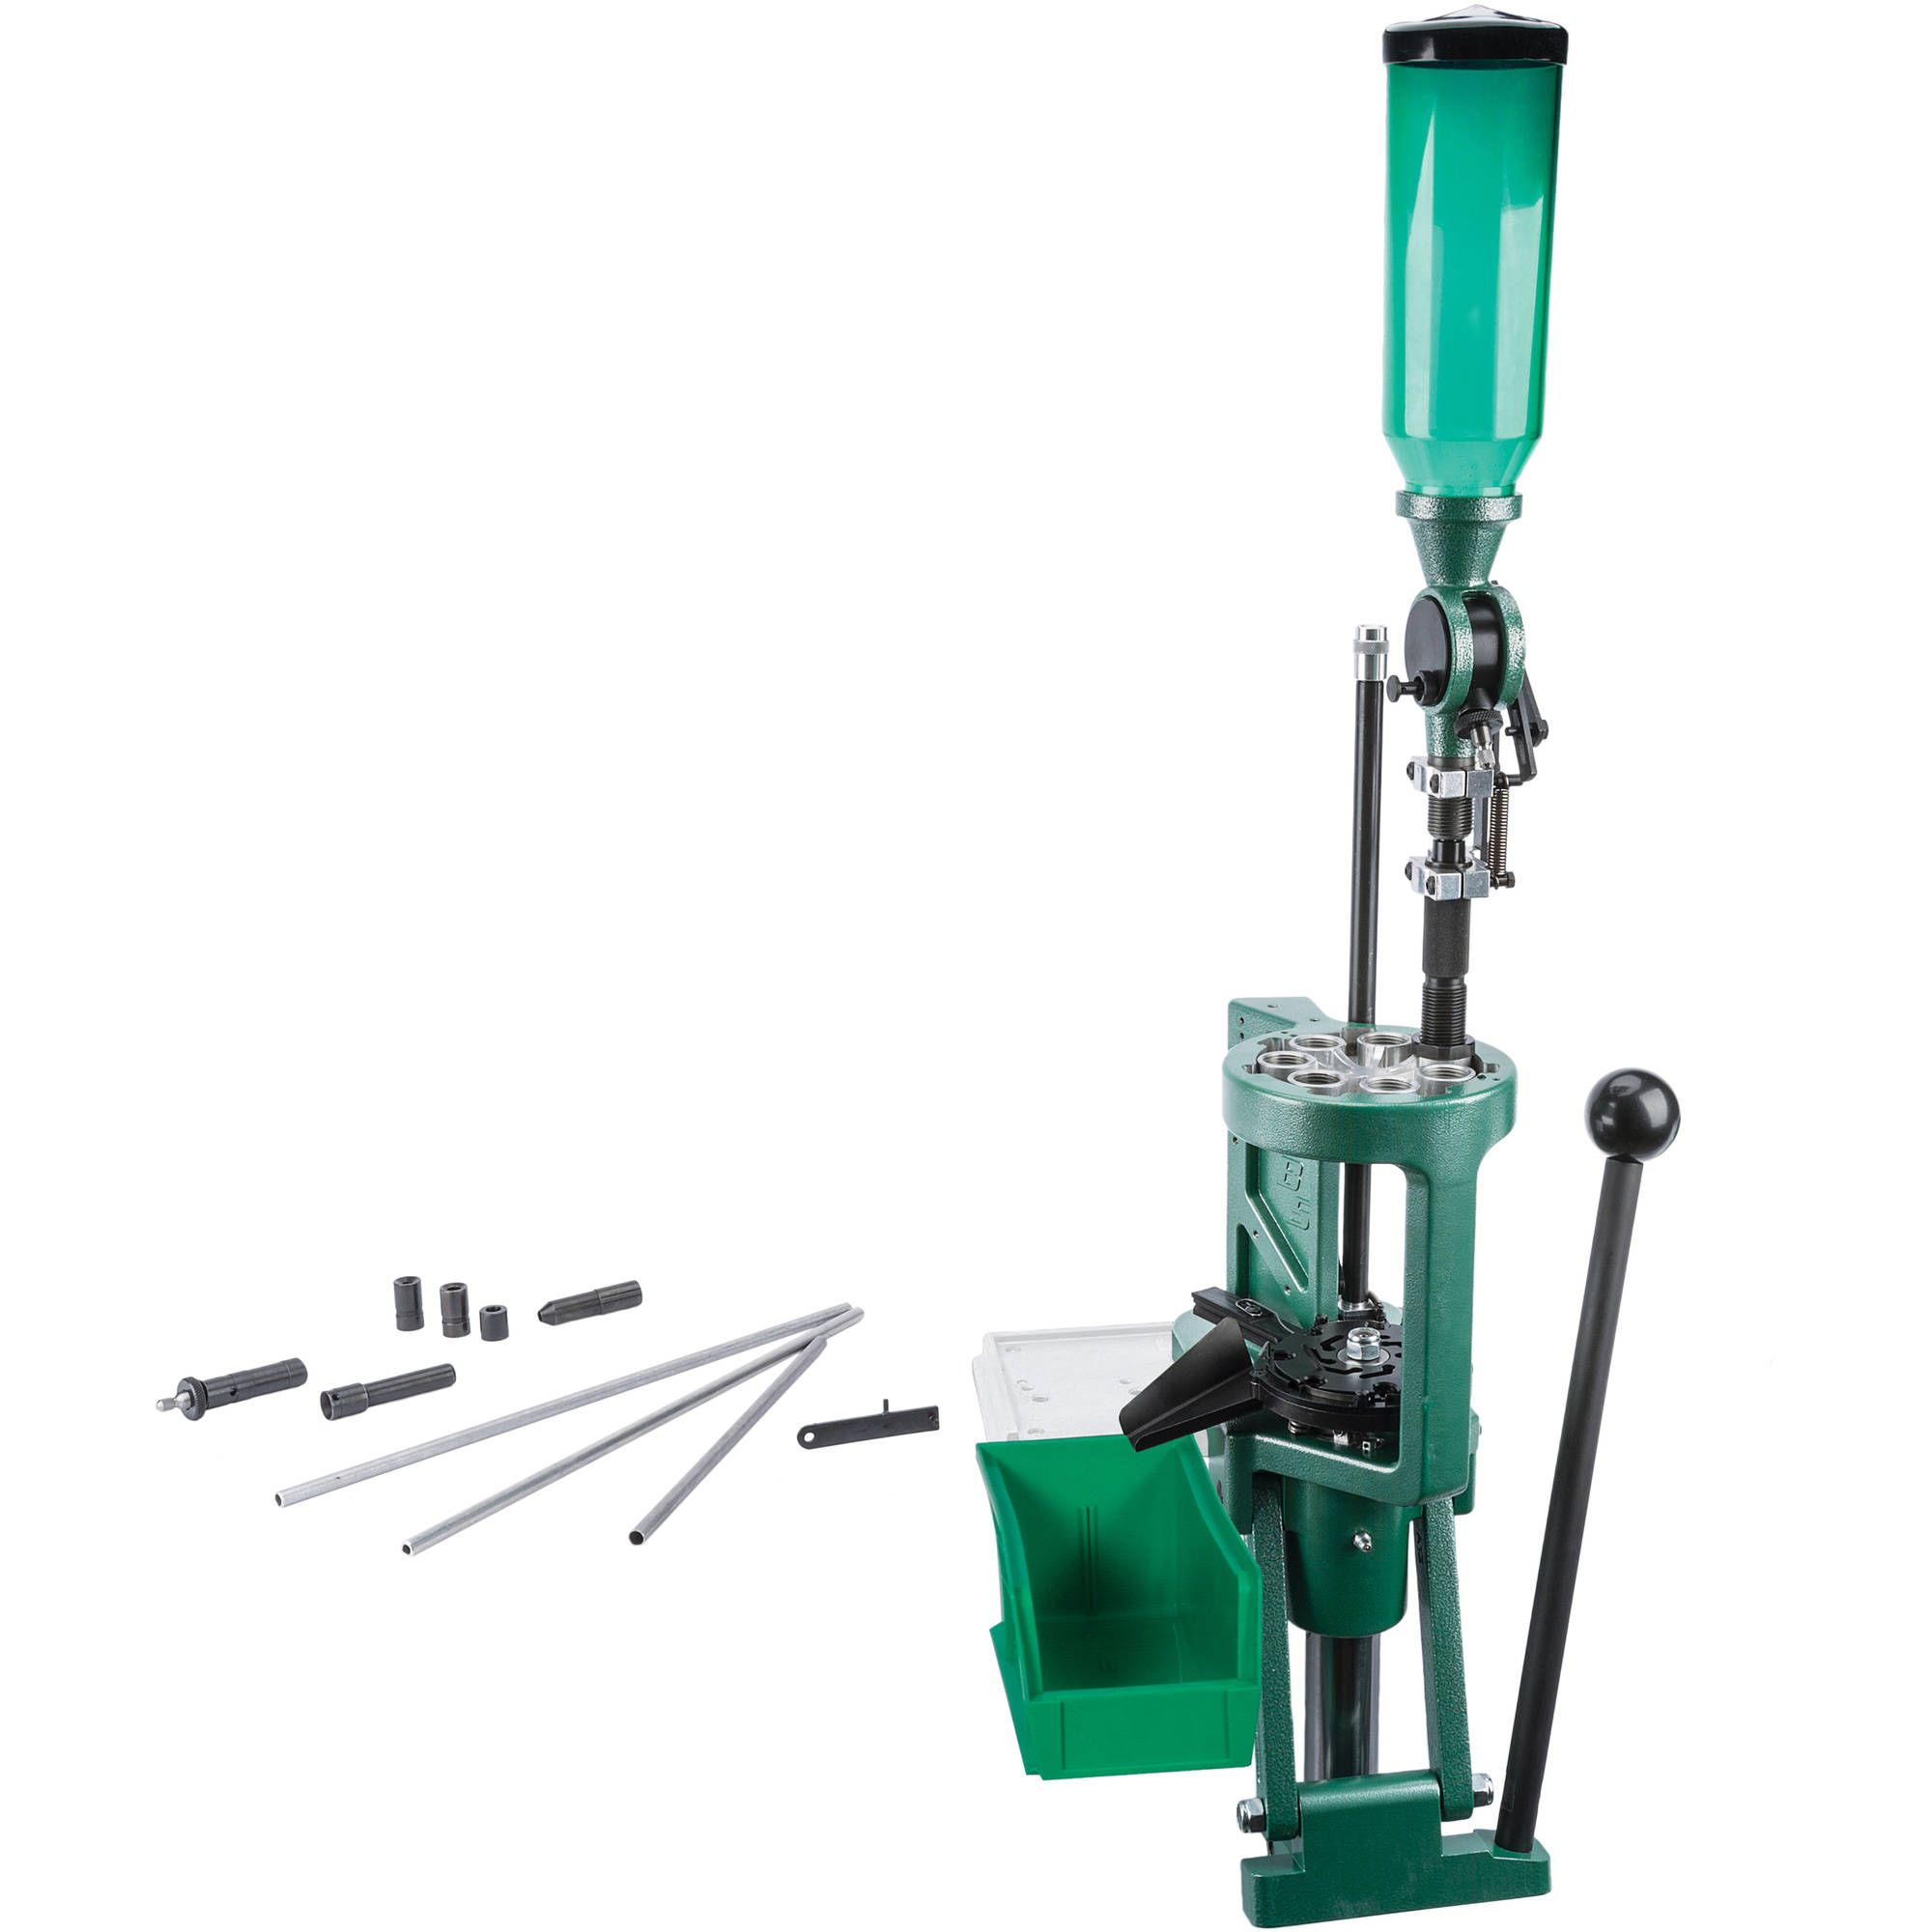 RCBS Pro Chucker 7 Progressive Reloading Press by Rcbs